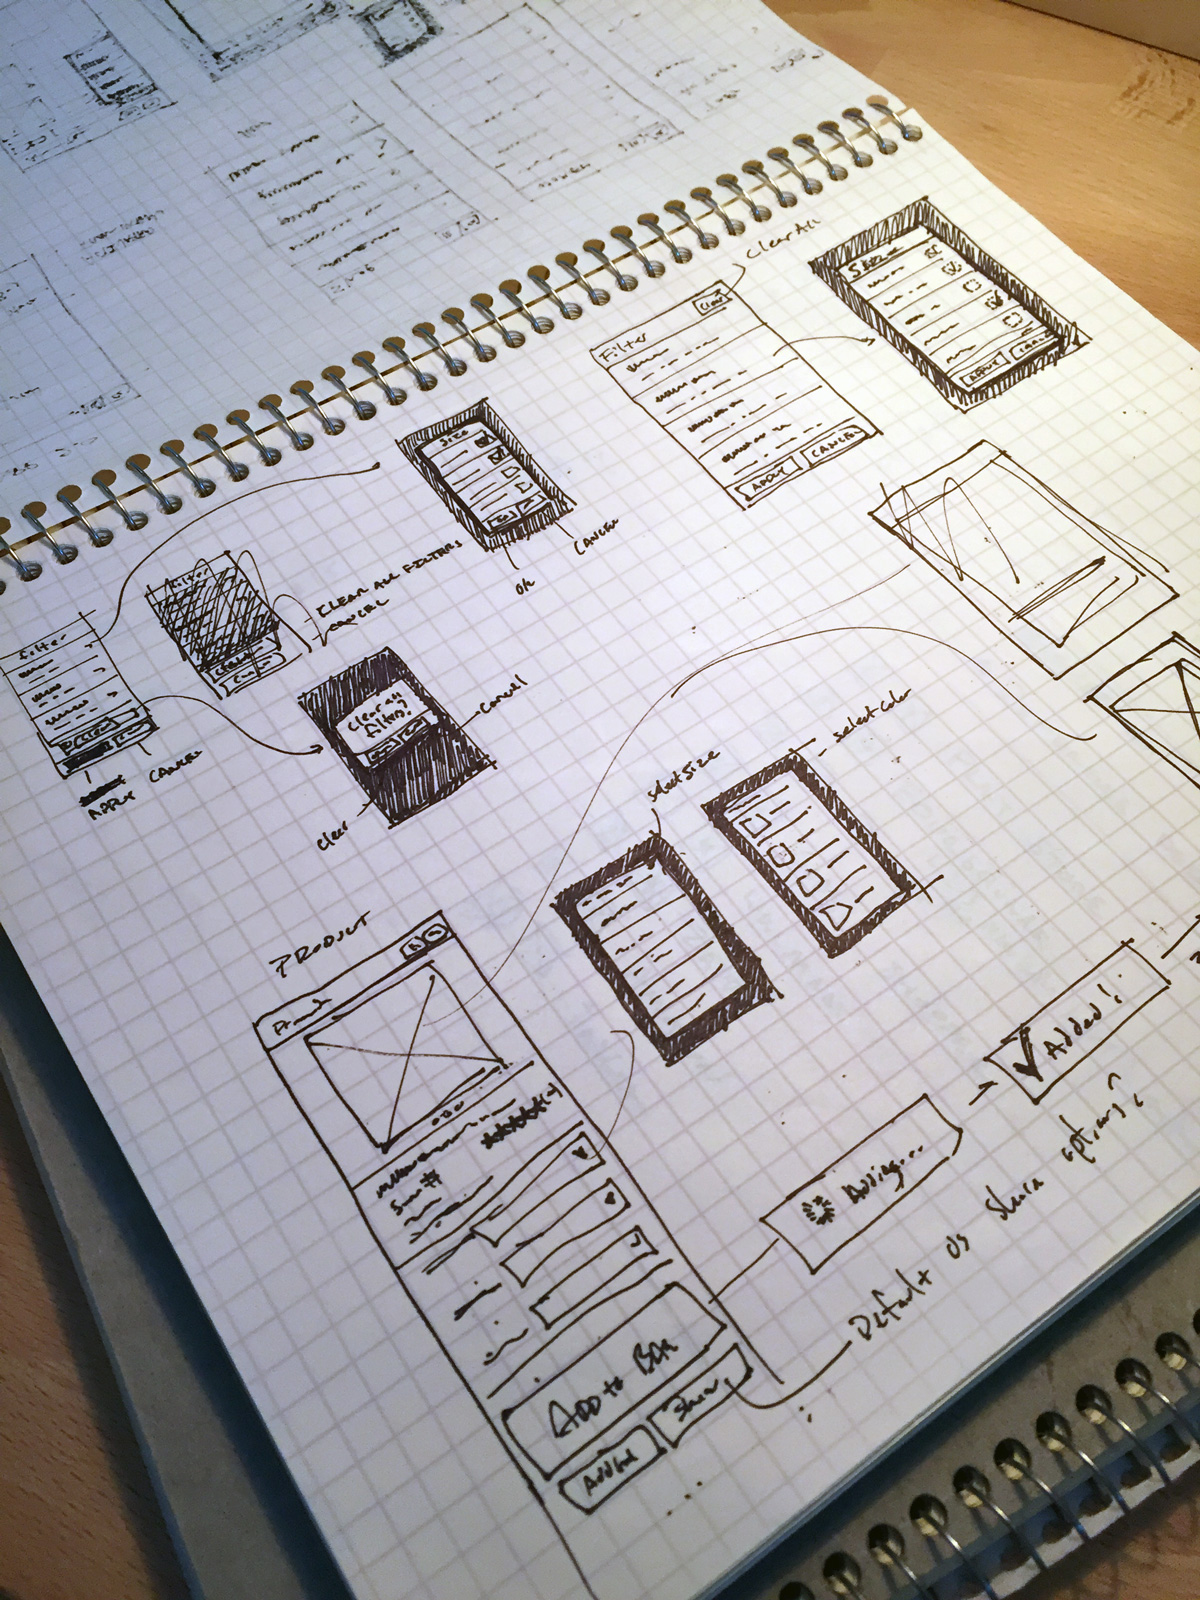 Mobile design sketches